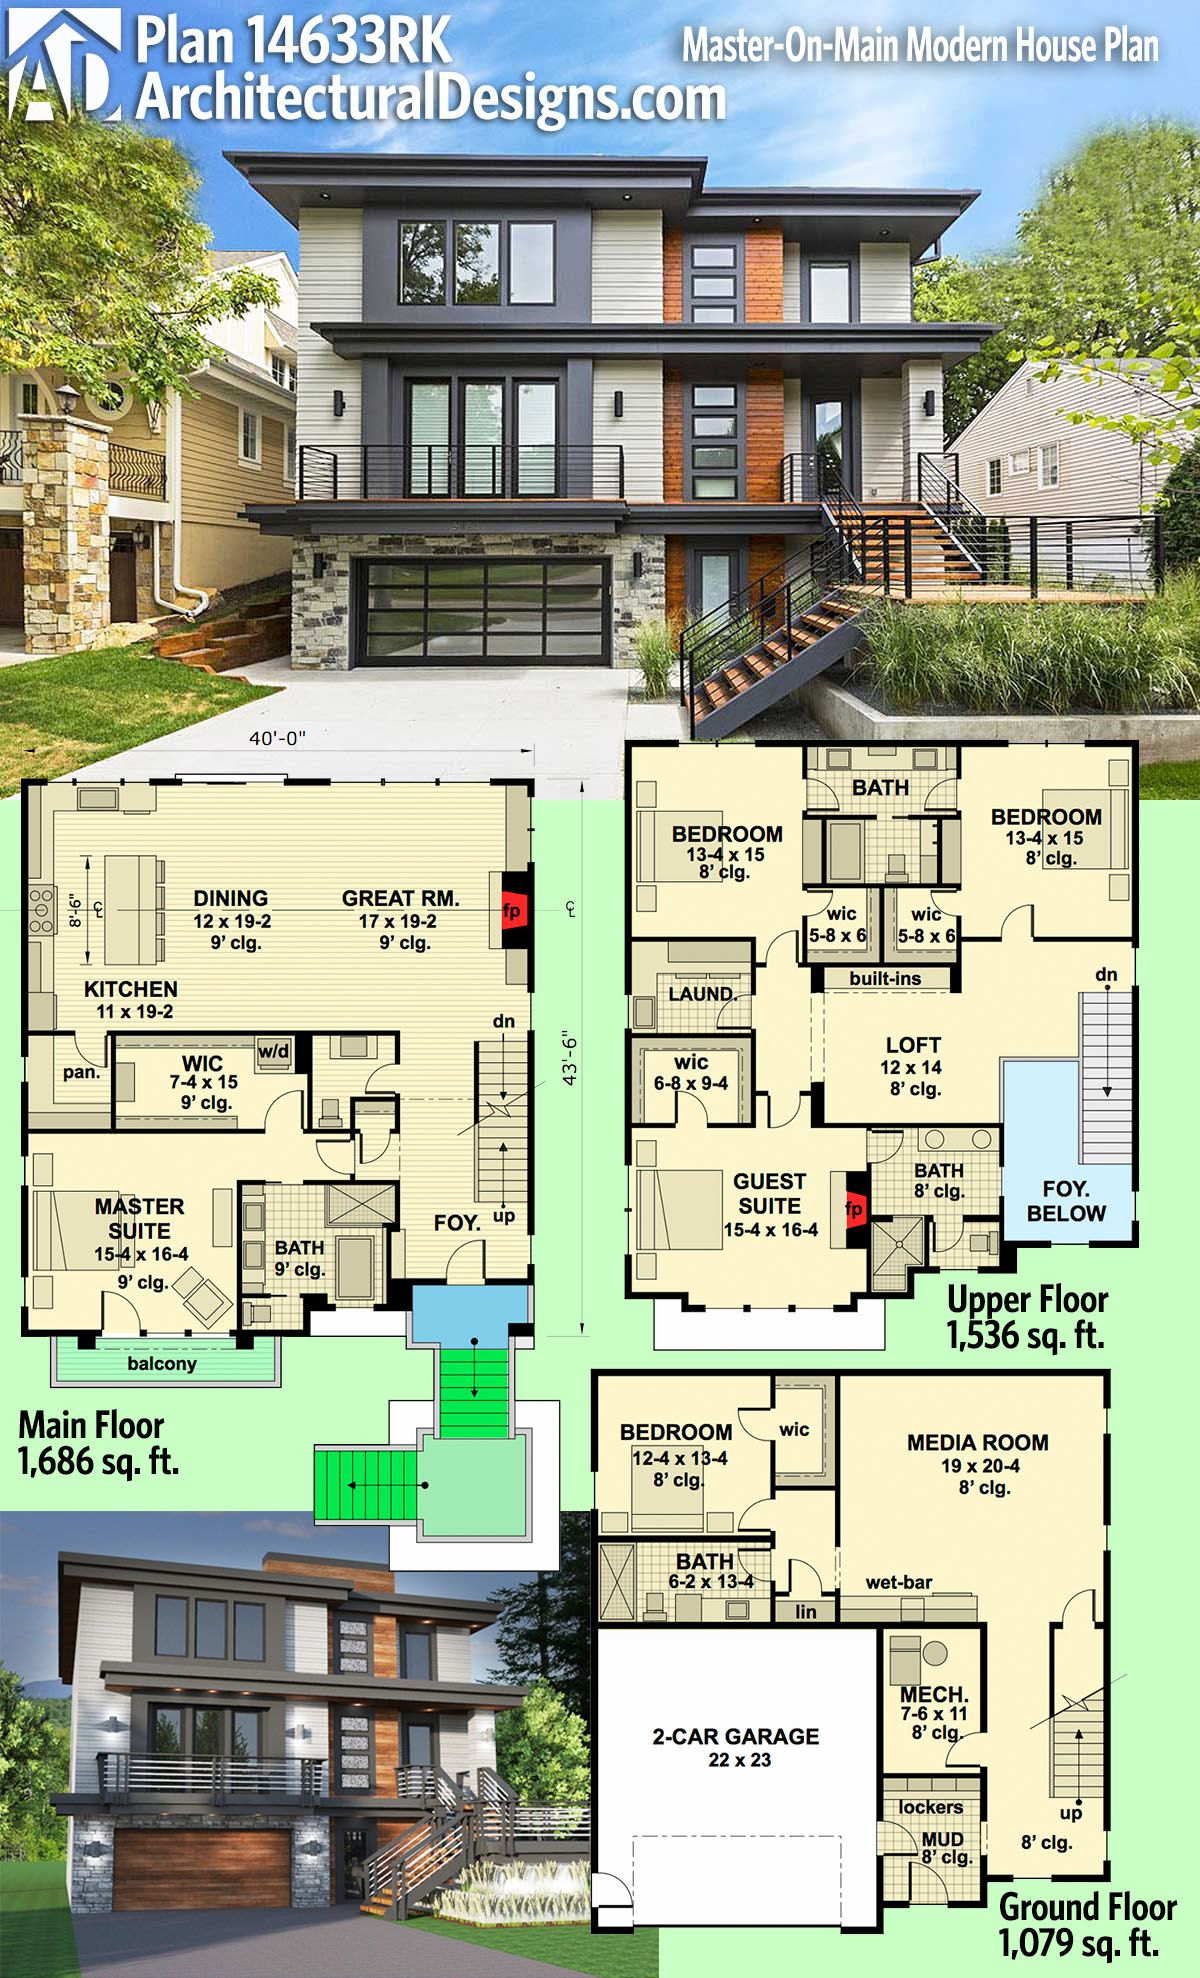 Remove top floor move and expand laundry etc dream house plans modern house